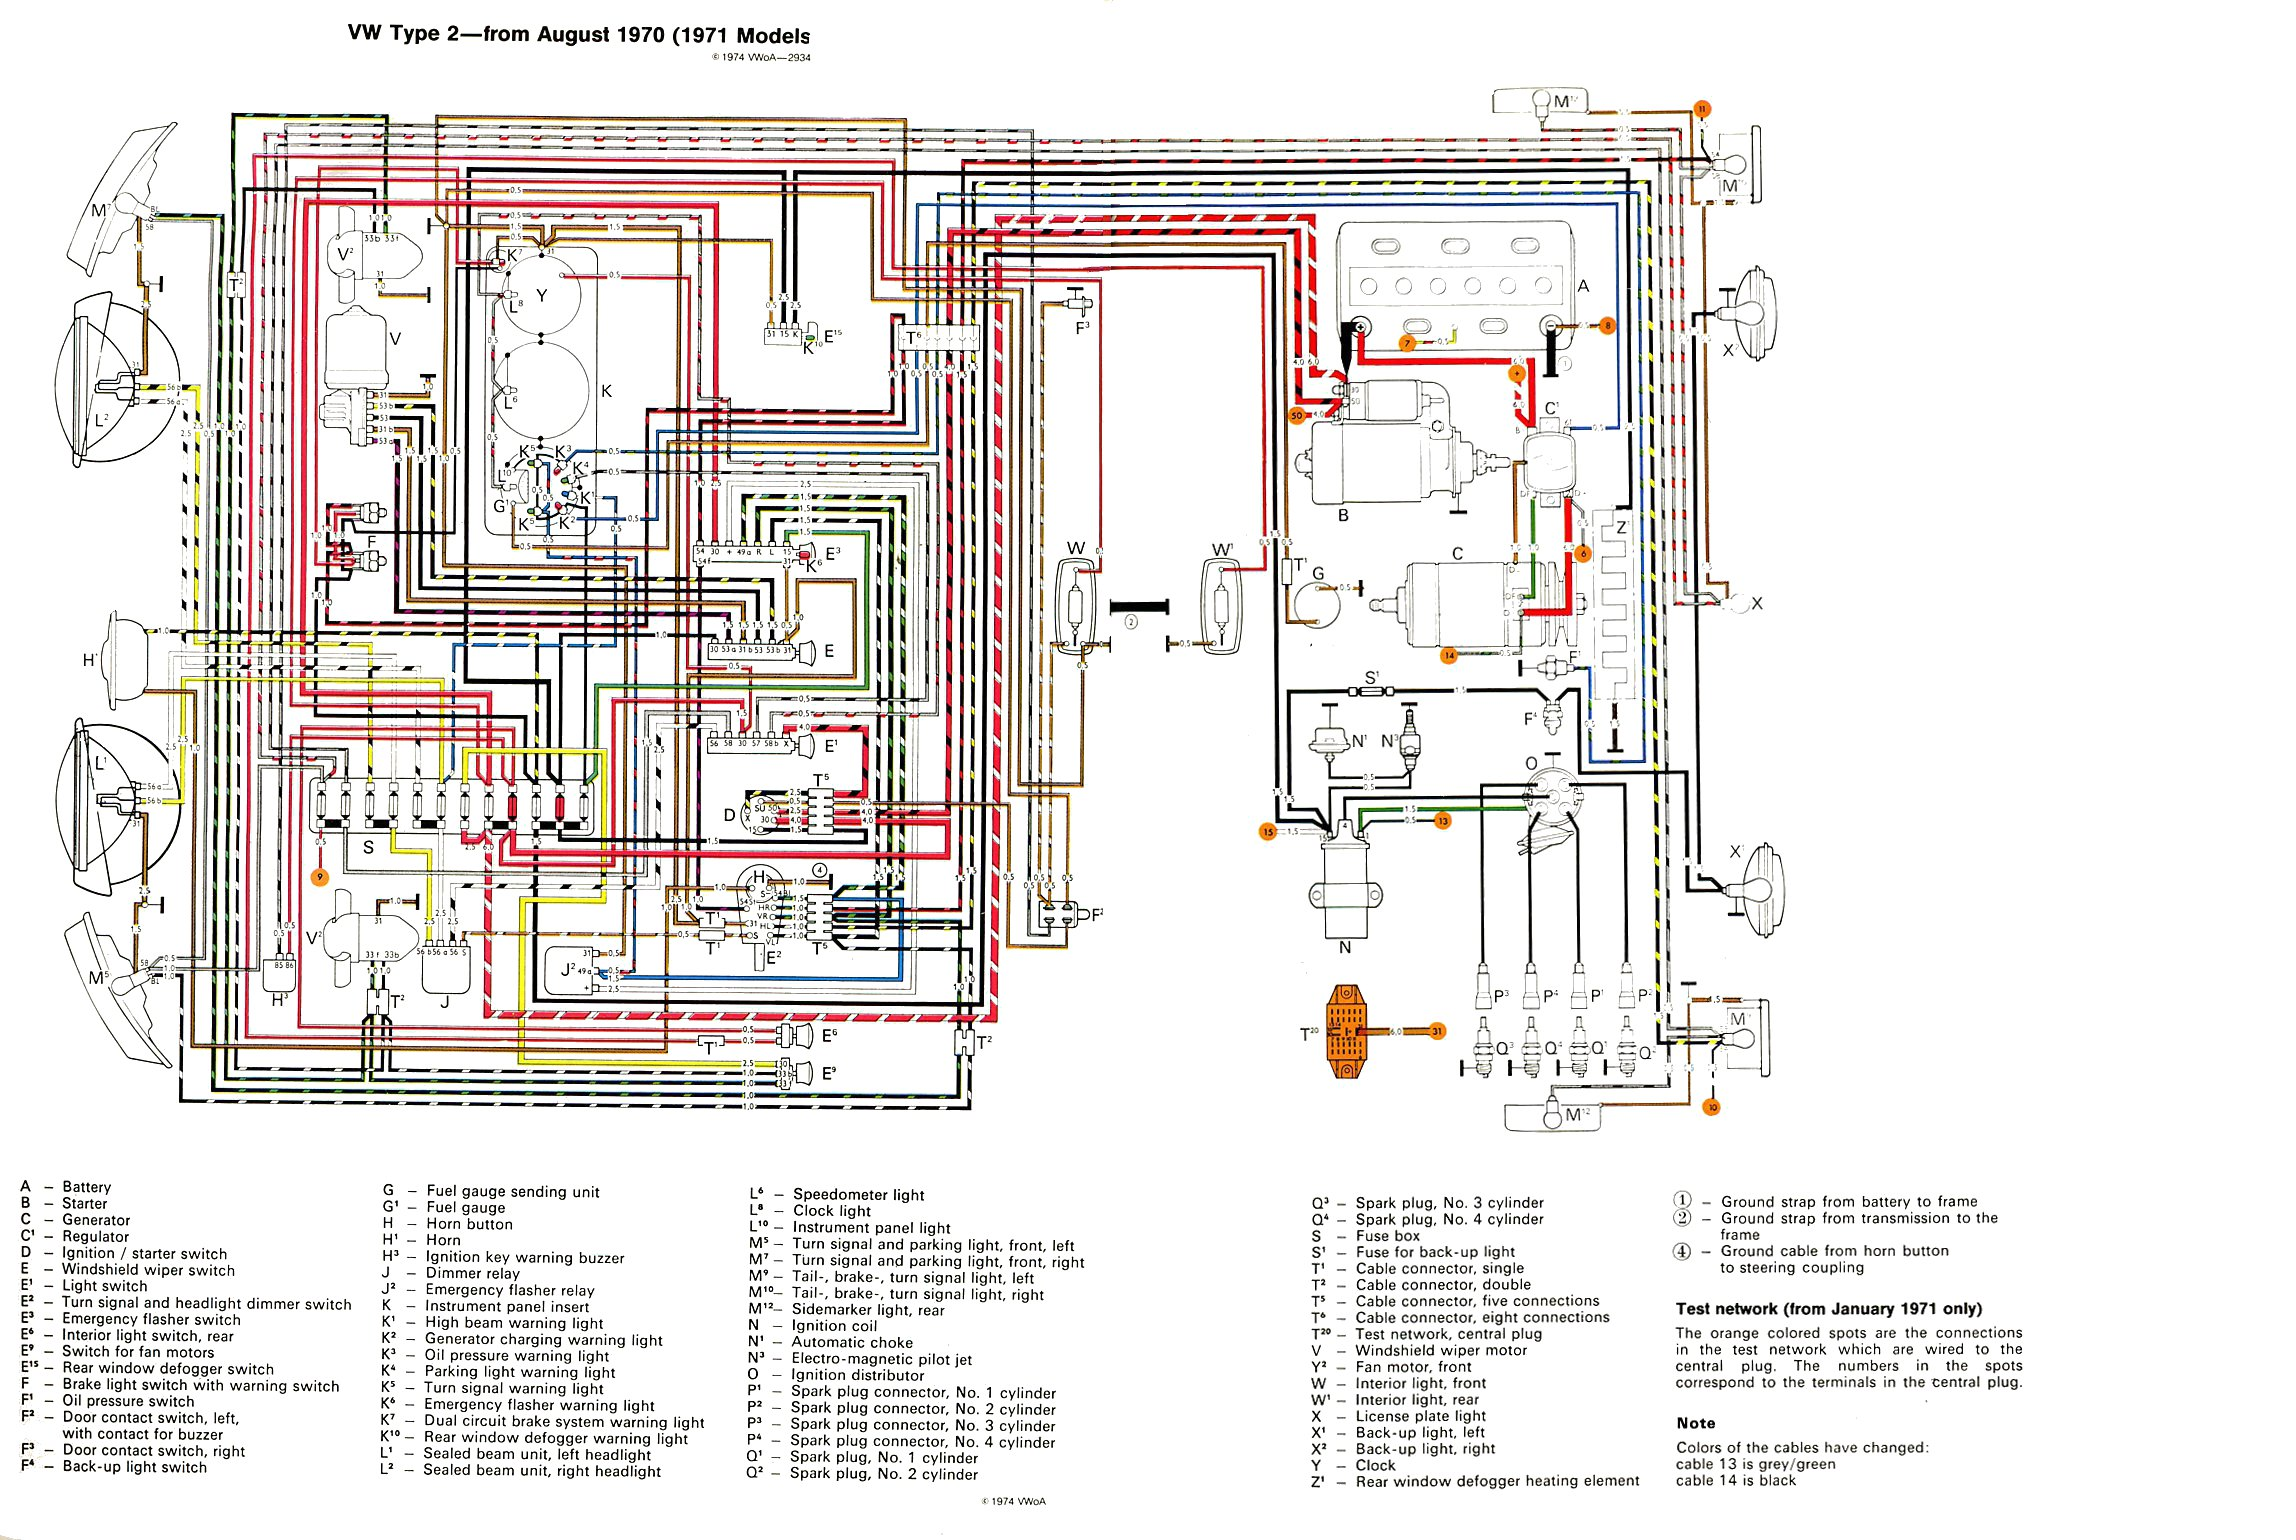 baybus_71 thesamba com type 2 wiring diagrams 73 corvette wiring diagram pdf at honlapkeszites.co